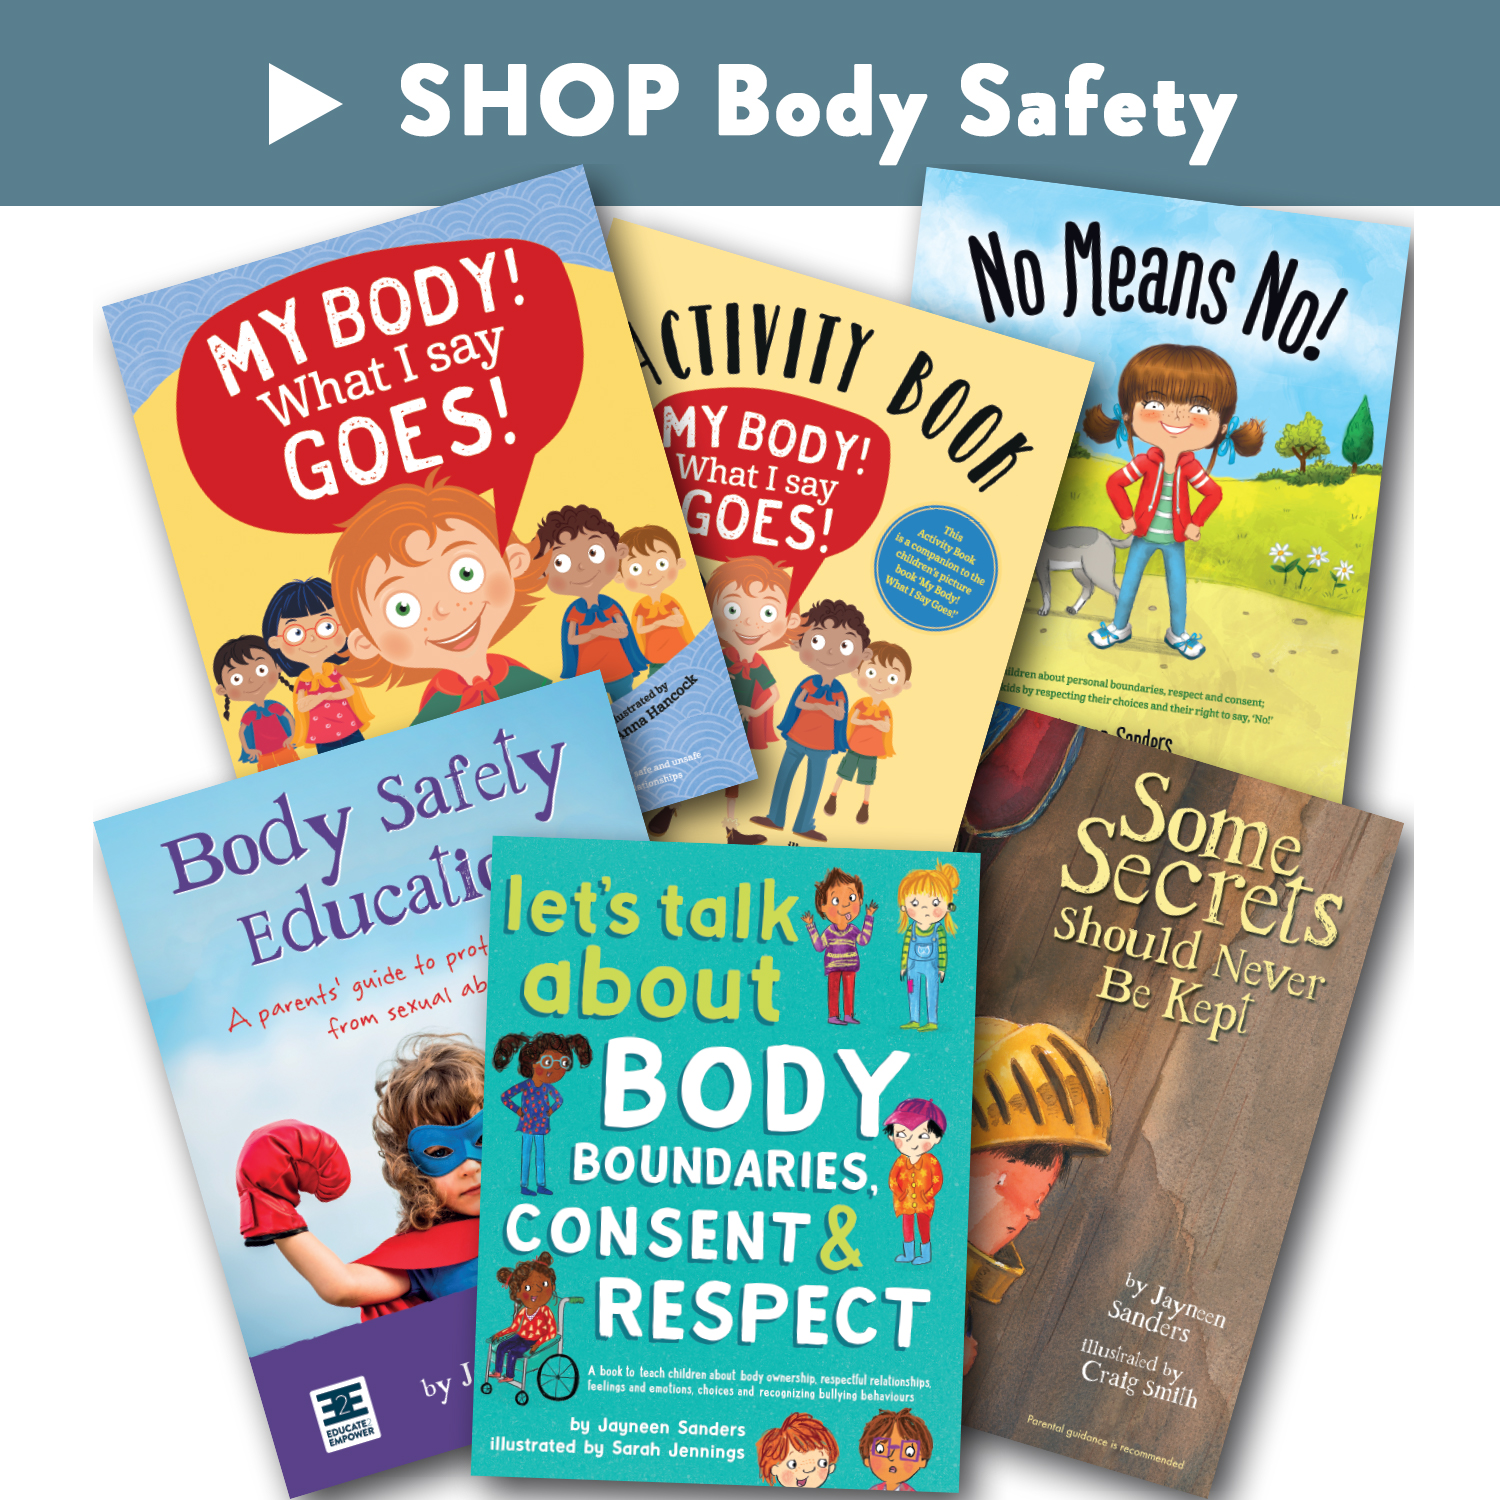 E2E_shop_BodySafety_1.jpg